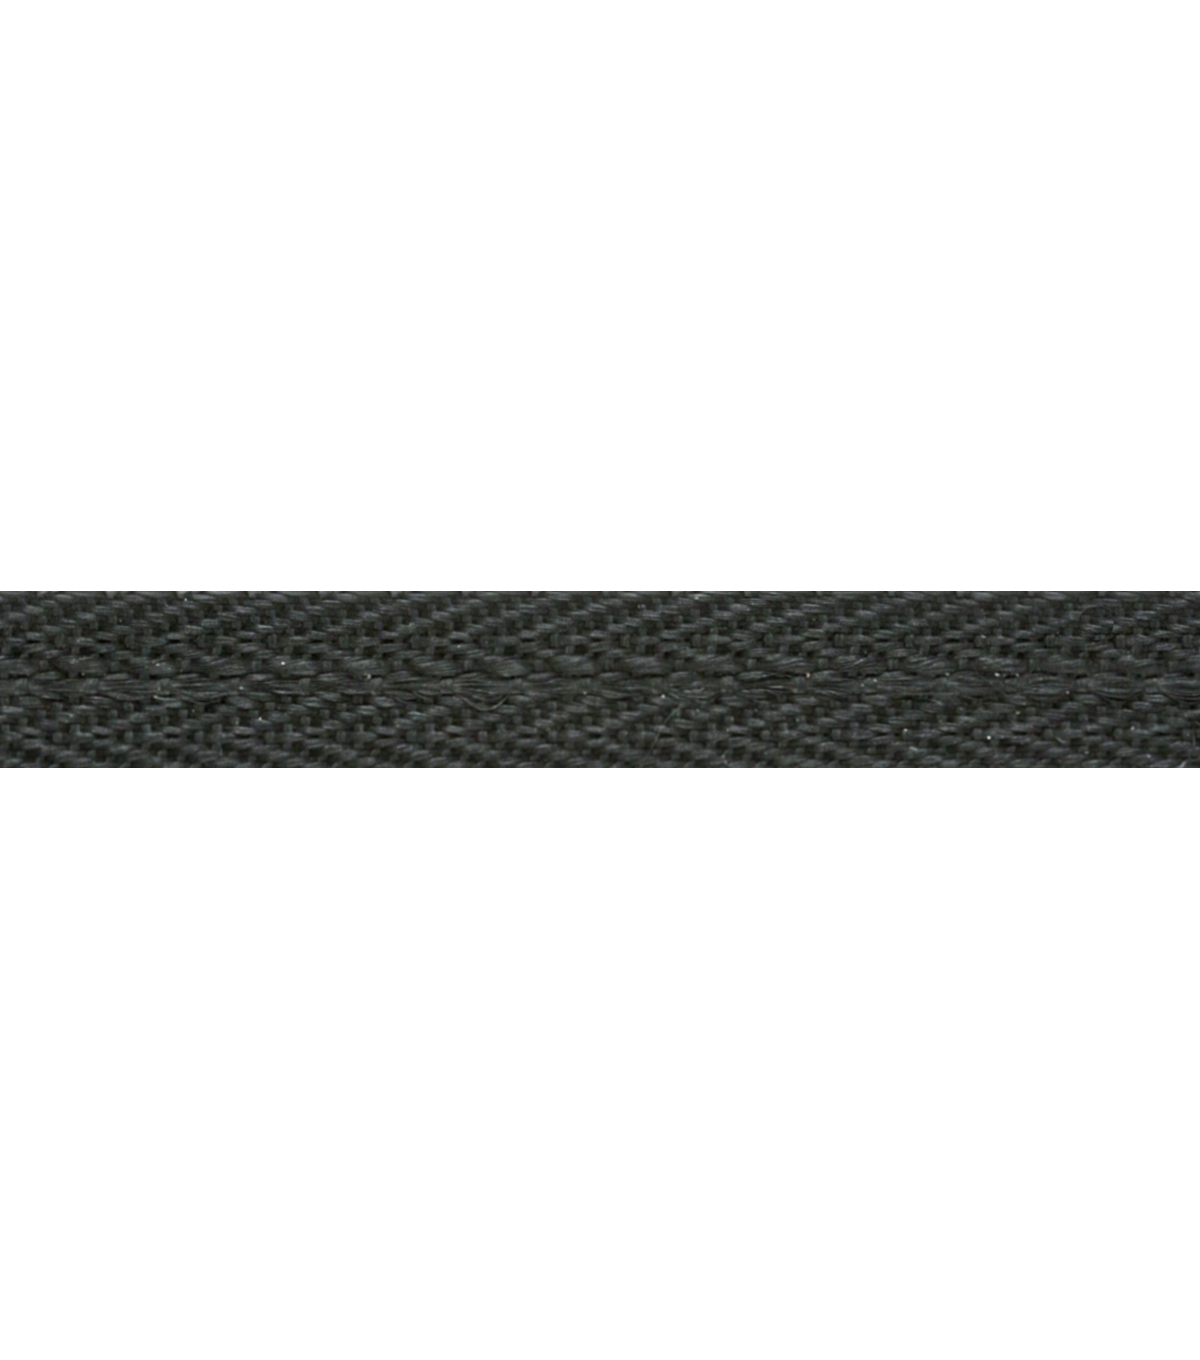 3/8\u0022 Black Webbing Apparel Trim